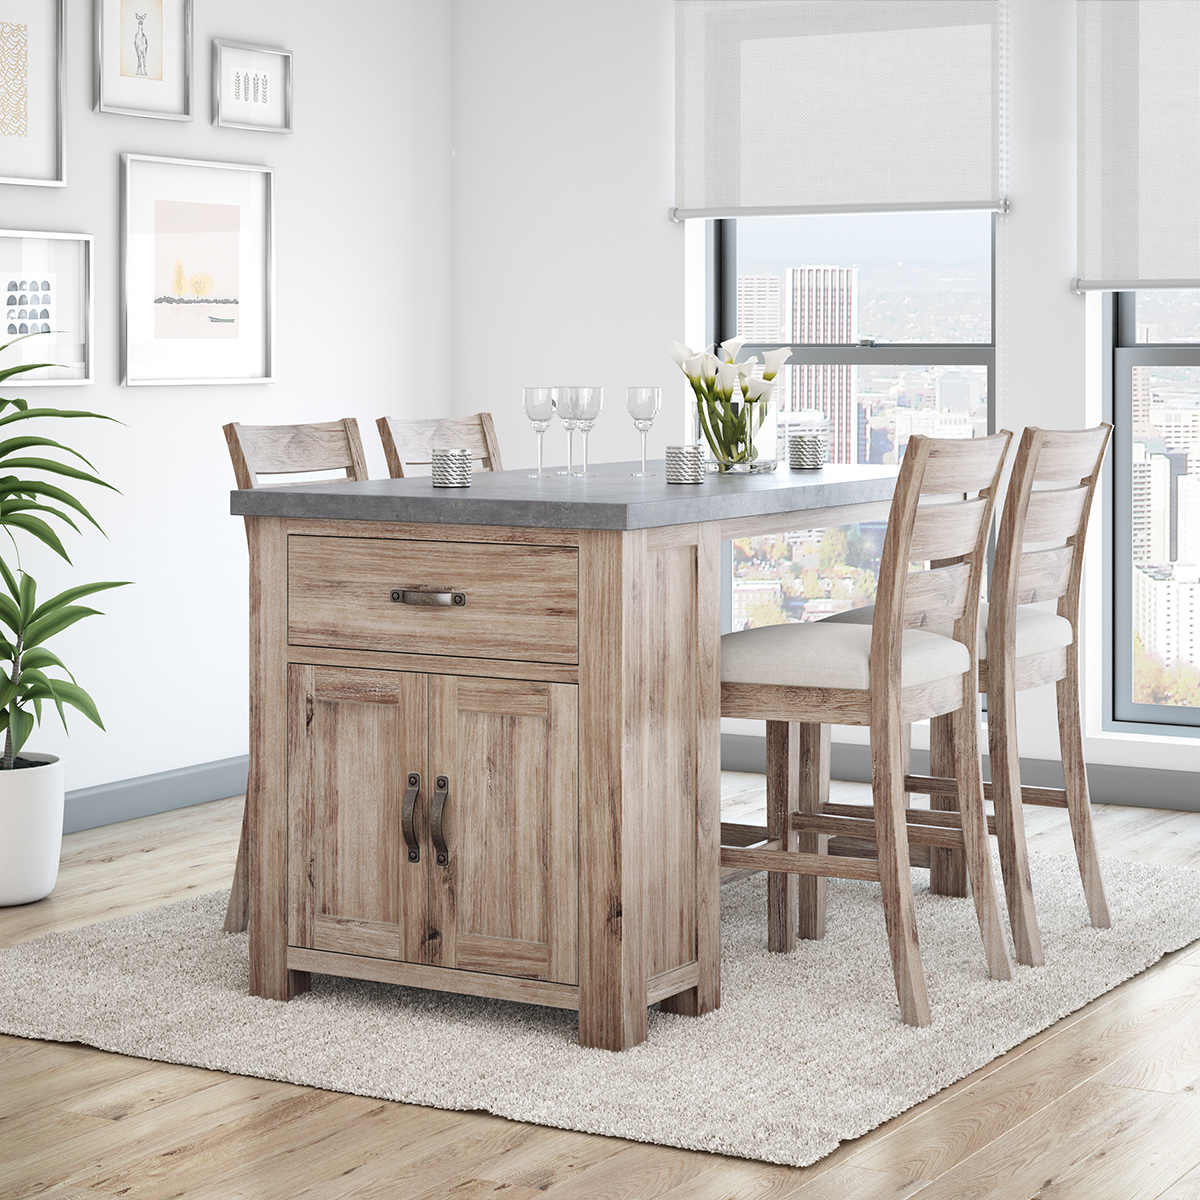 Small space dining room with multi-tasking bar table with storage